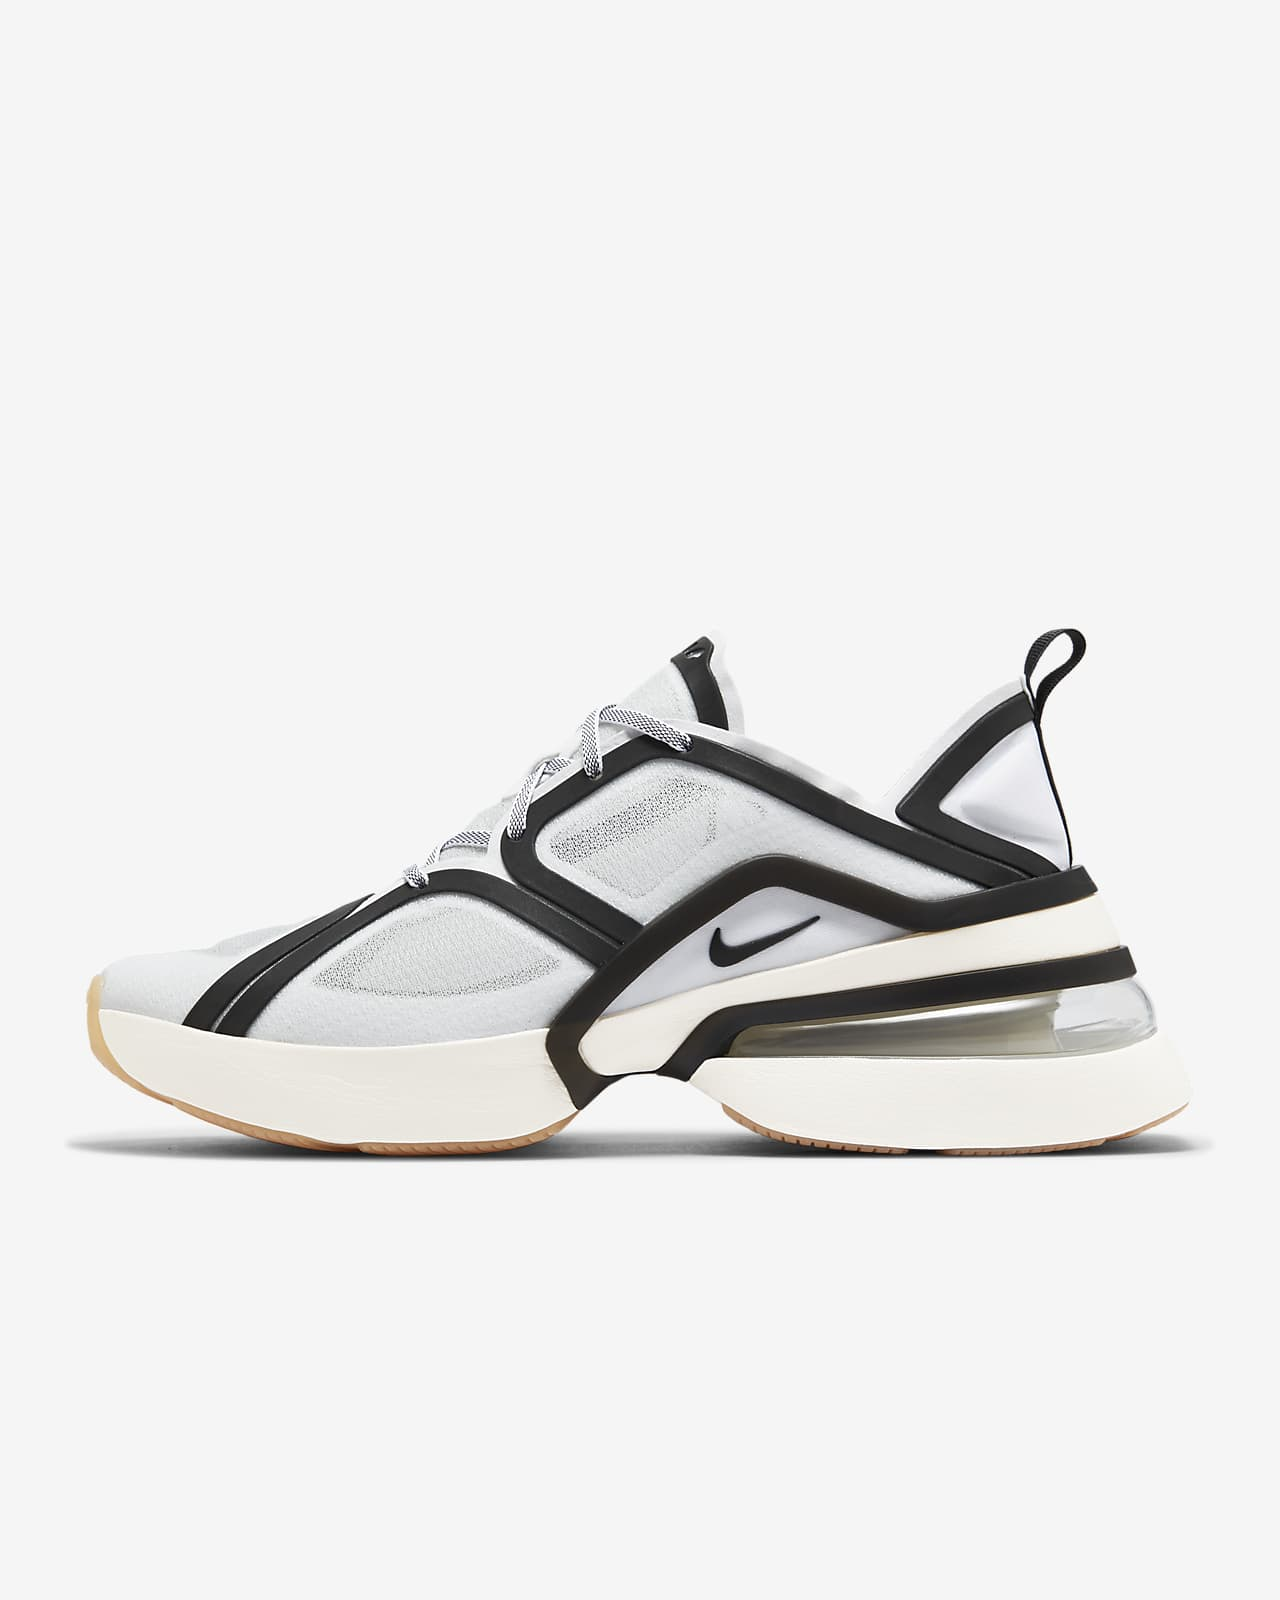 Nike Air Max 270 XX Women's Shoe